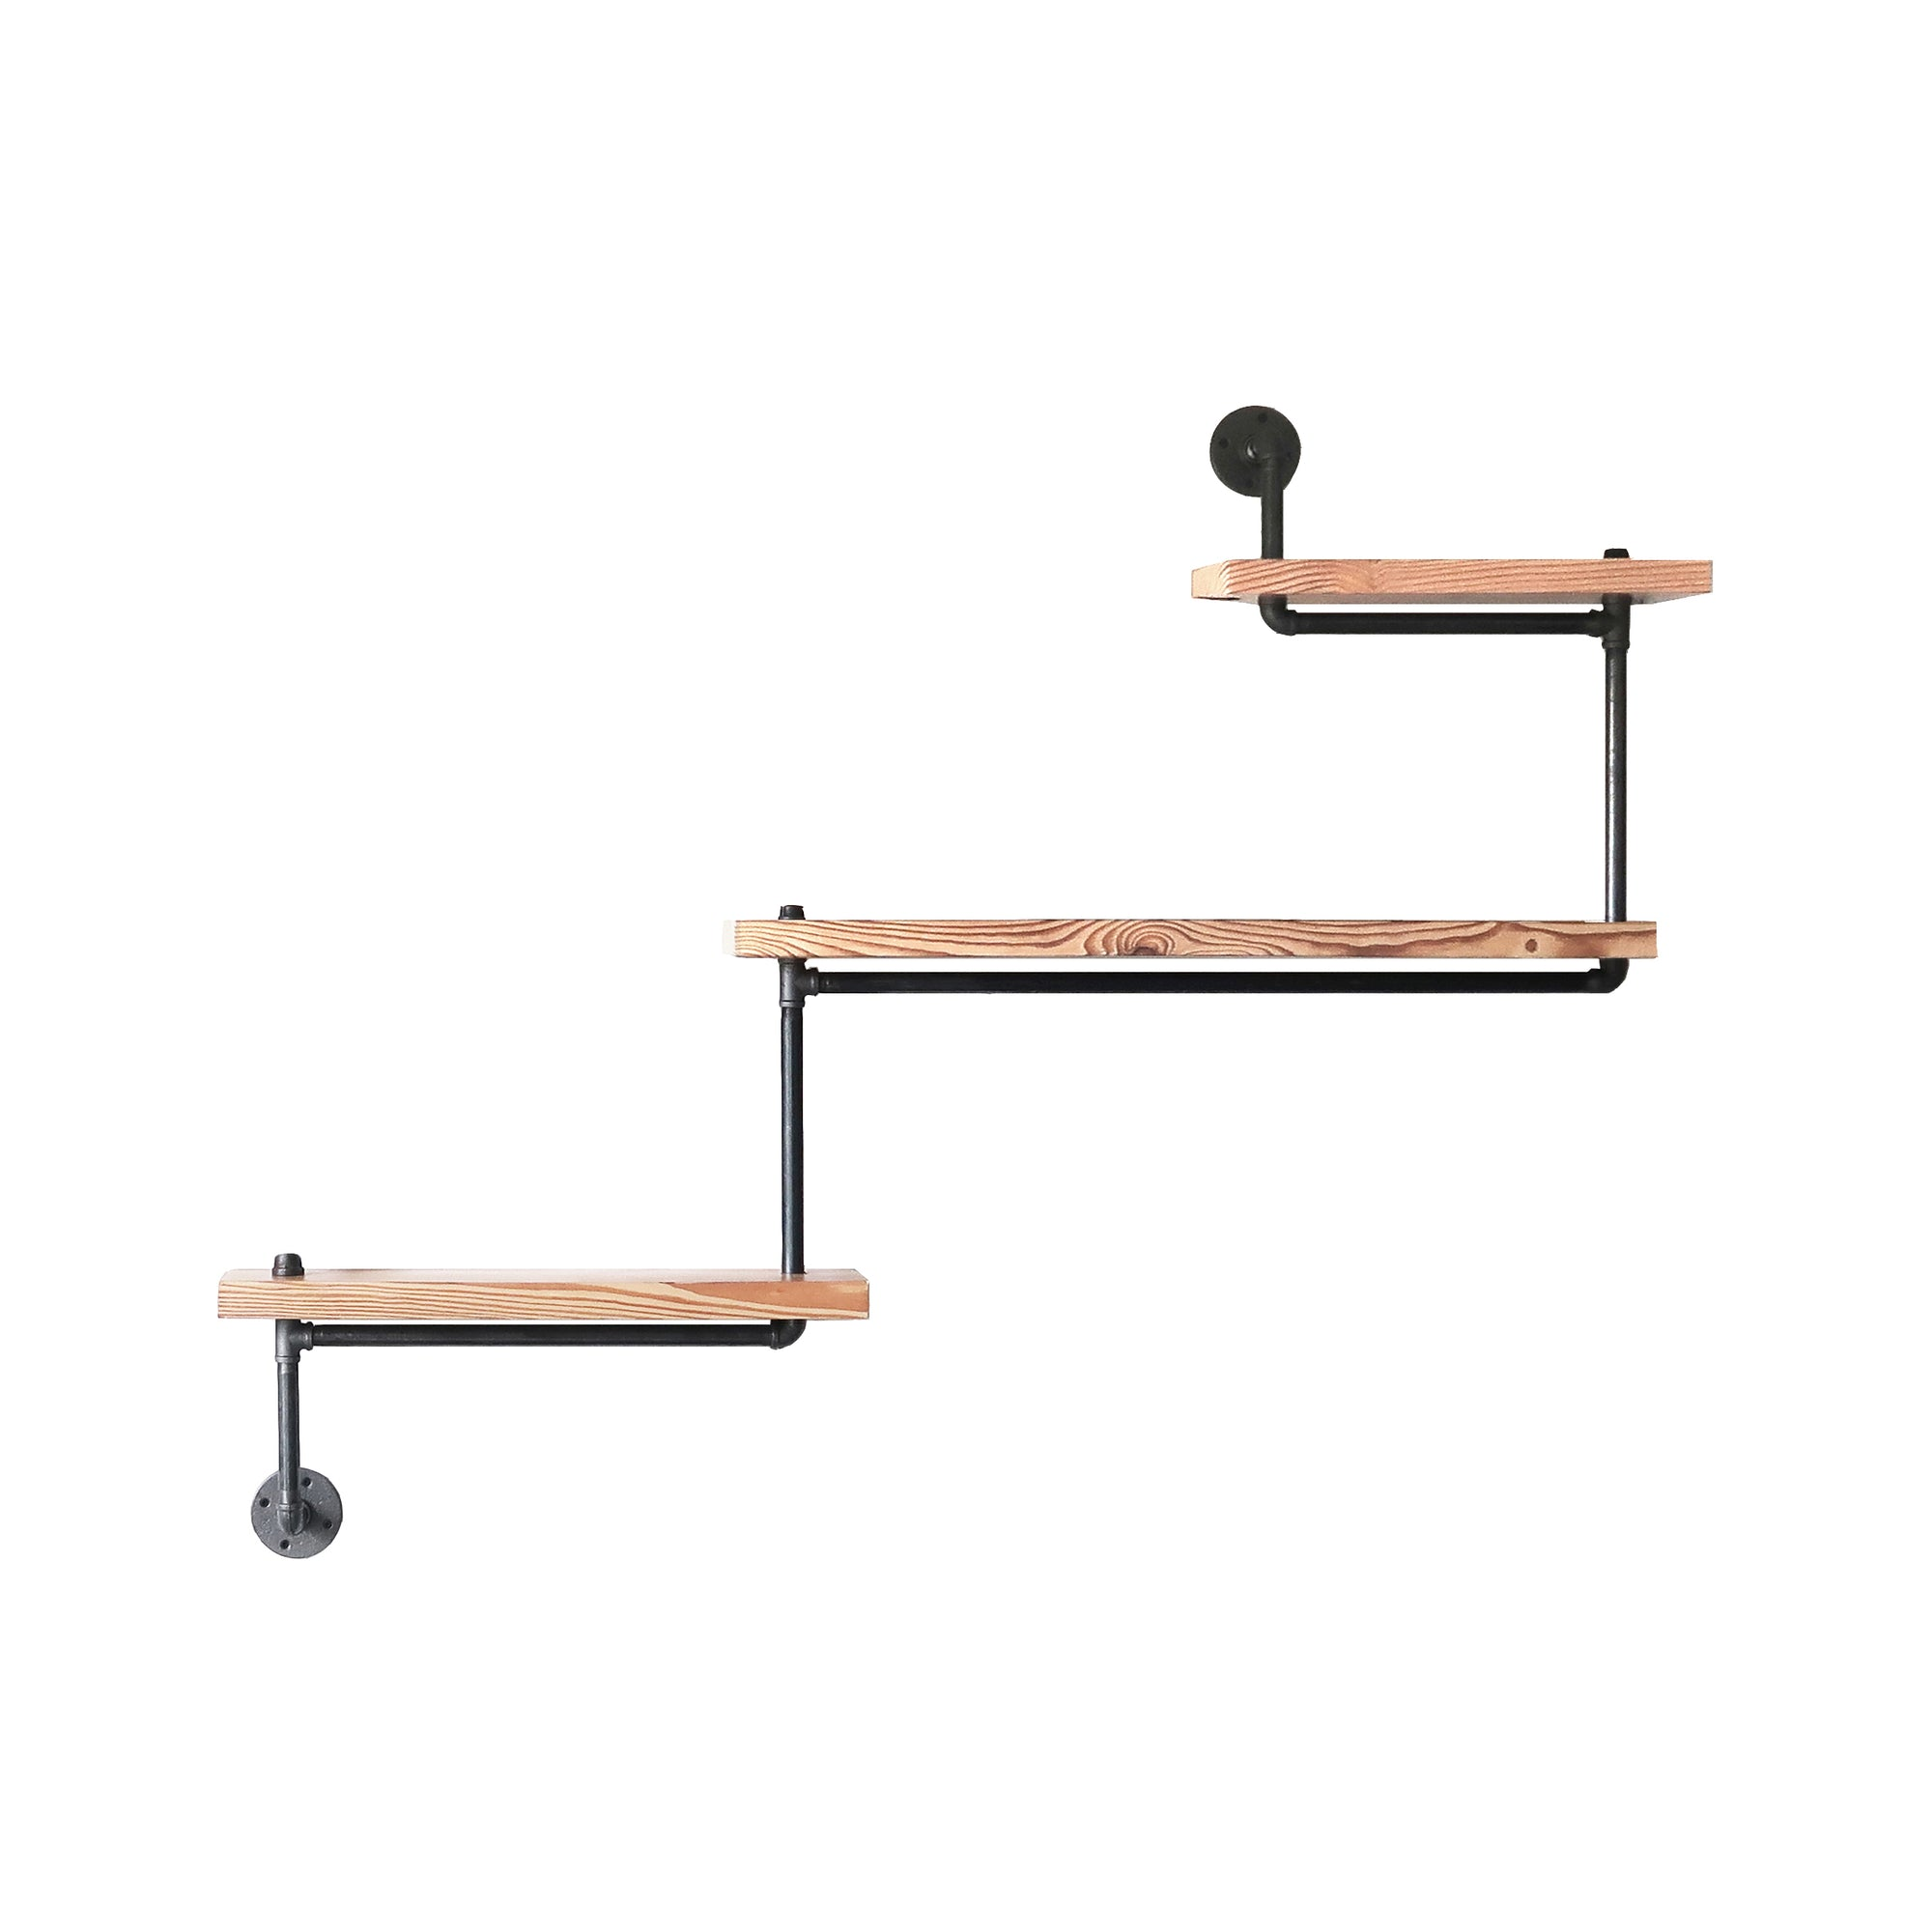 The Adjustable Shelf - Iron & Sprout